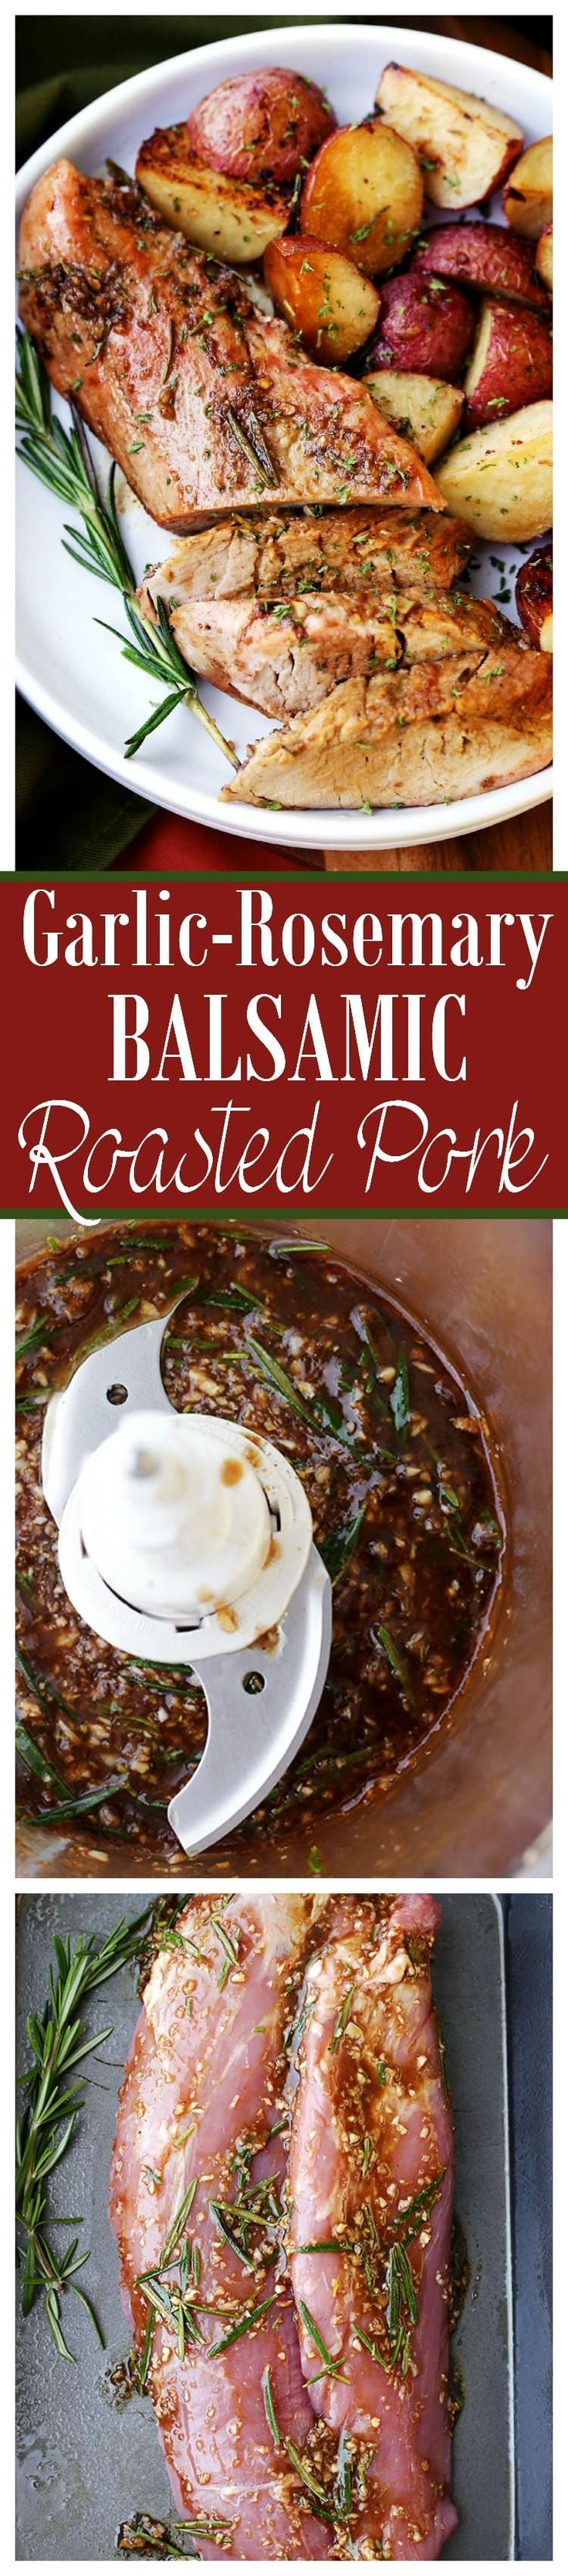 Garlic and Rosemary Balsamic Roasted Pork Loin - Easy to make, flavorful, incredibly tender pork loin rubbed with a Garlic and Rosemary Balsamic mixture makes for a crowd pleasing dinner with very little effort. via @diethood